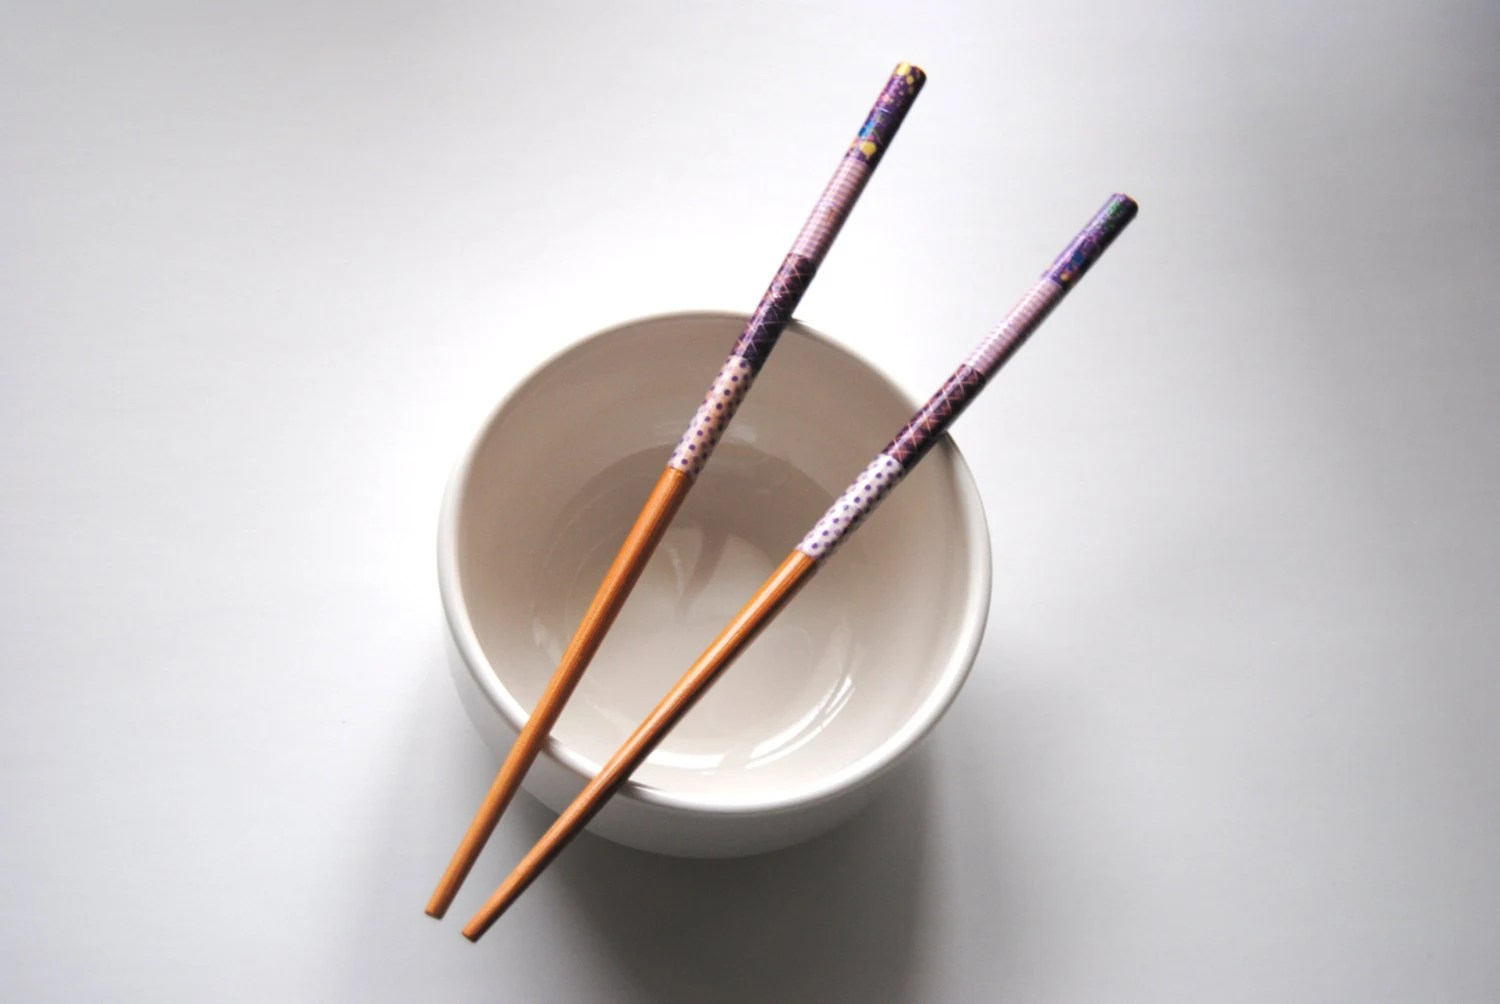 Pair of Washi Tape Wrapped Bamboo Chopsticks - Purples, Natural, Patchwork - storiebrooke